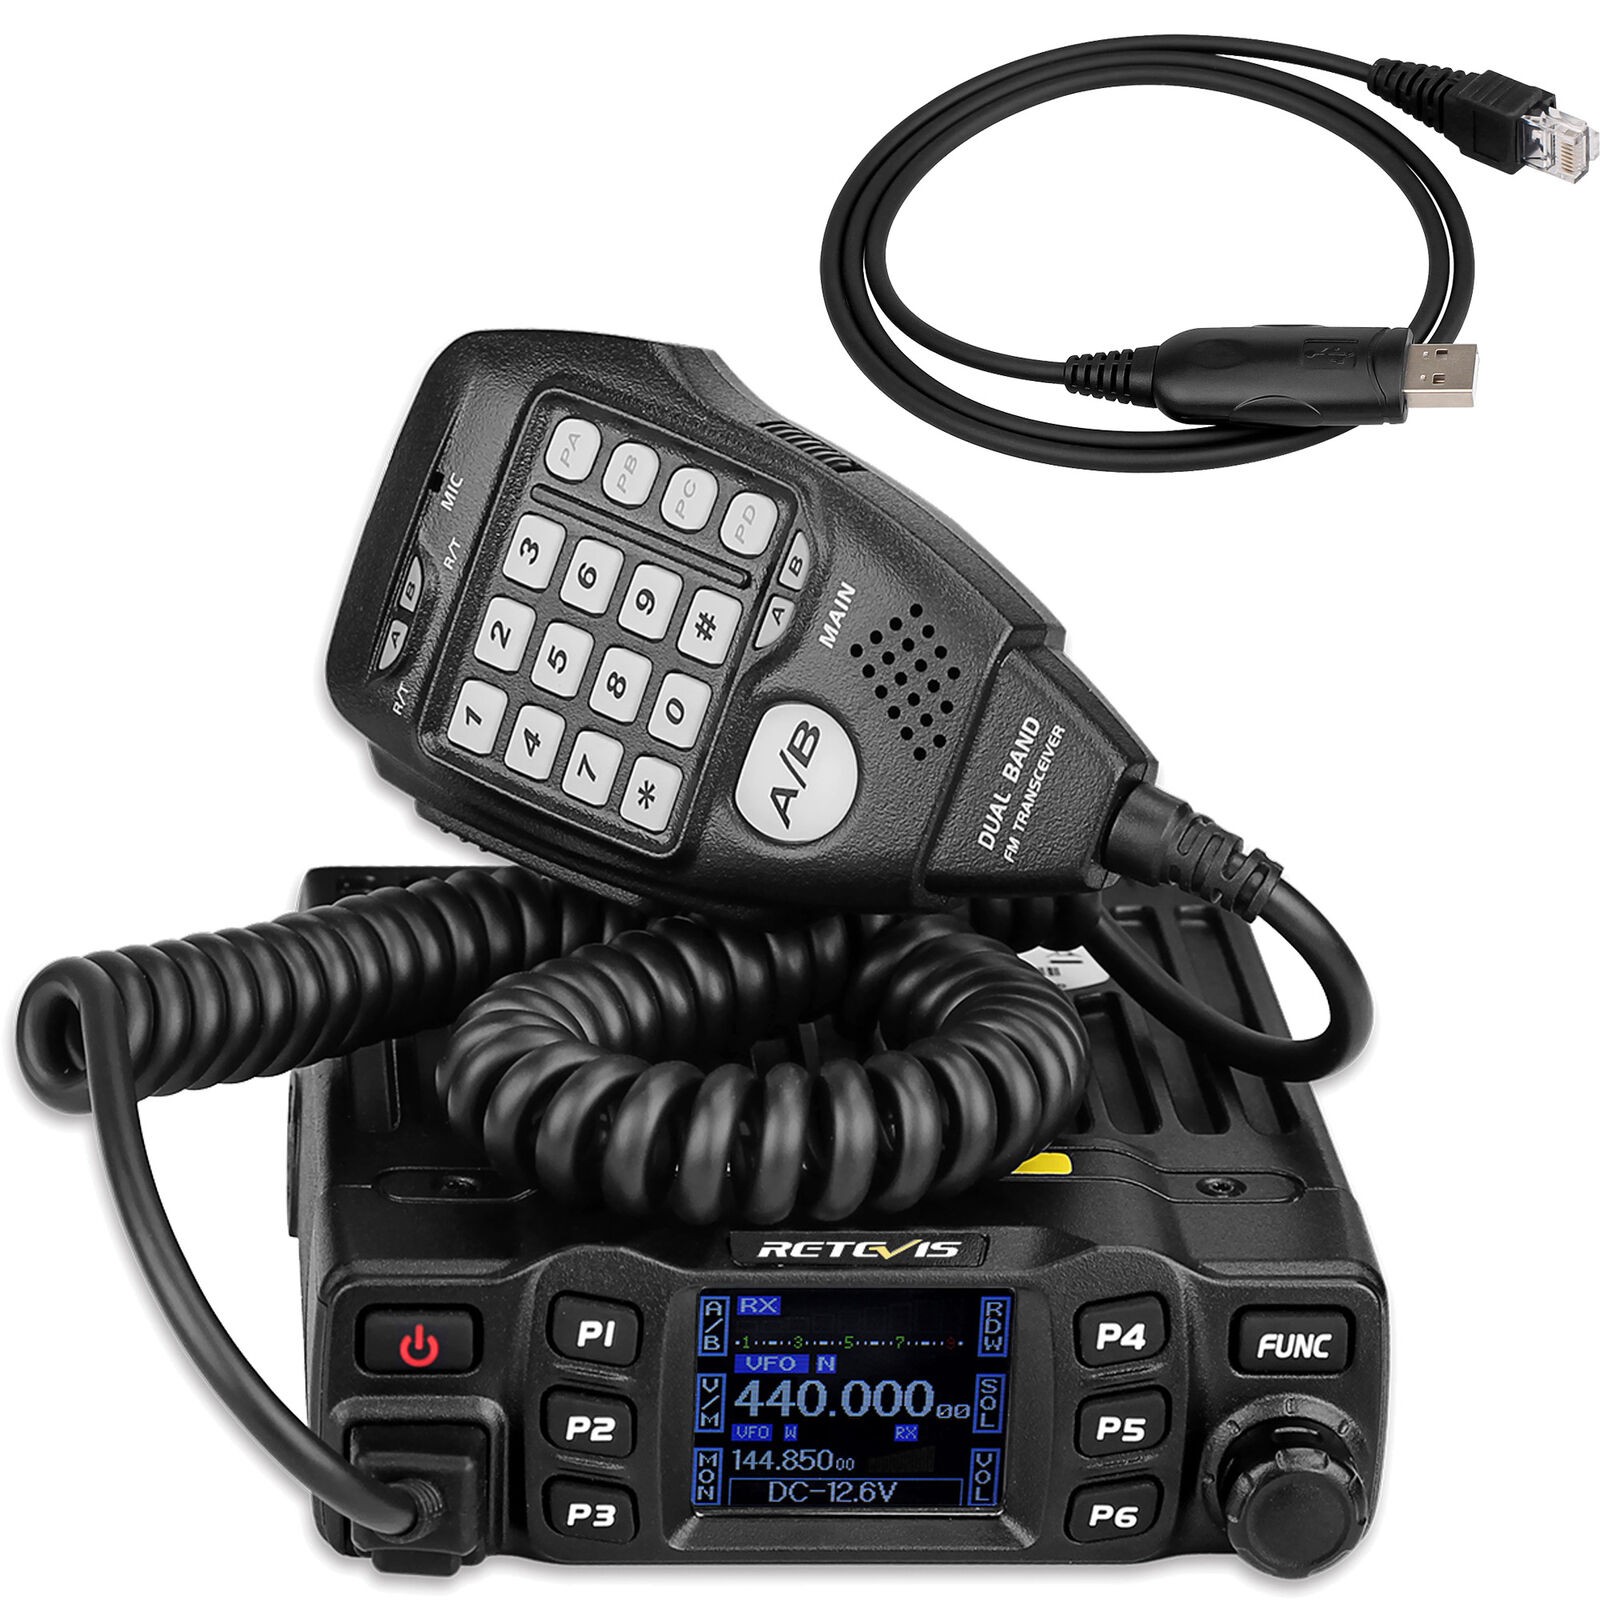 Hot RT95 Dual Band VHF144-146MHz UHF430-440MHz 200CH Mobile Car Radio+USB Cable